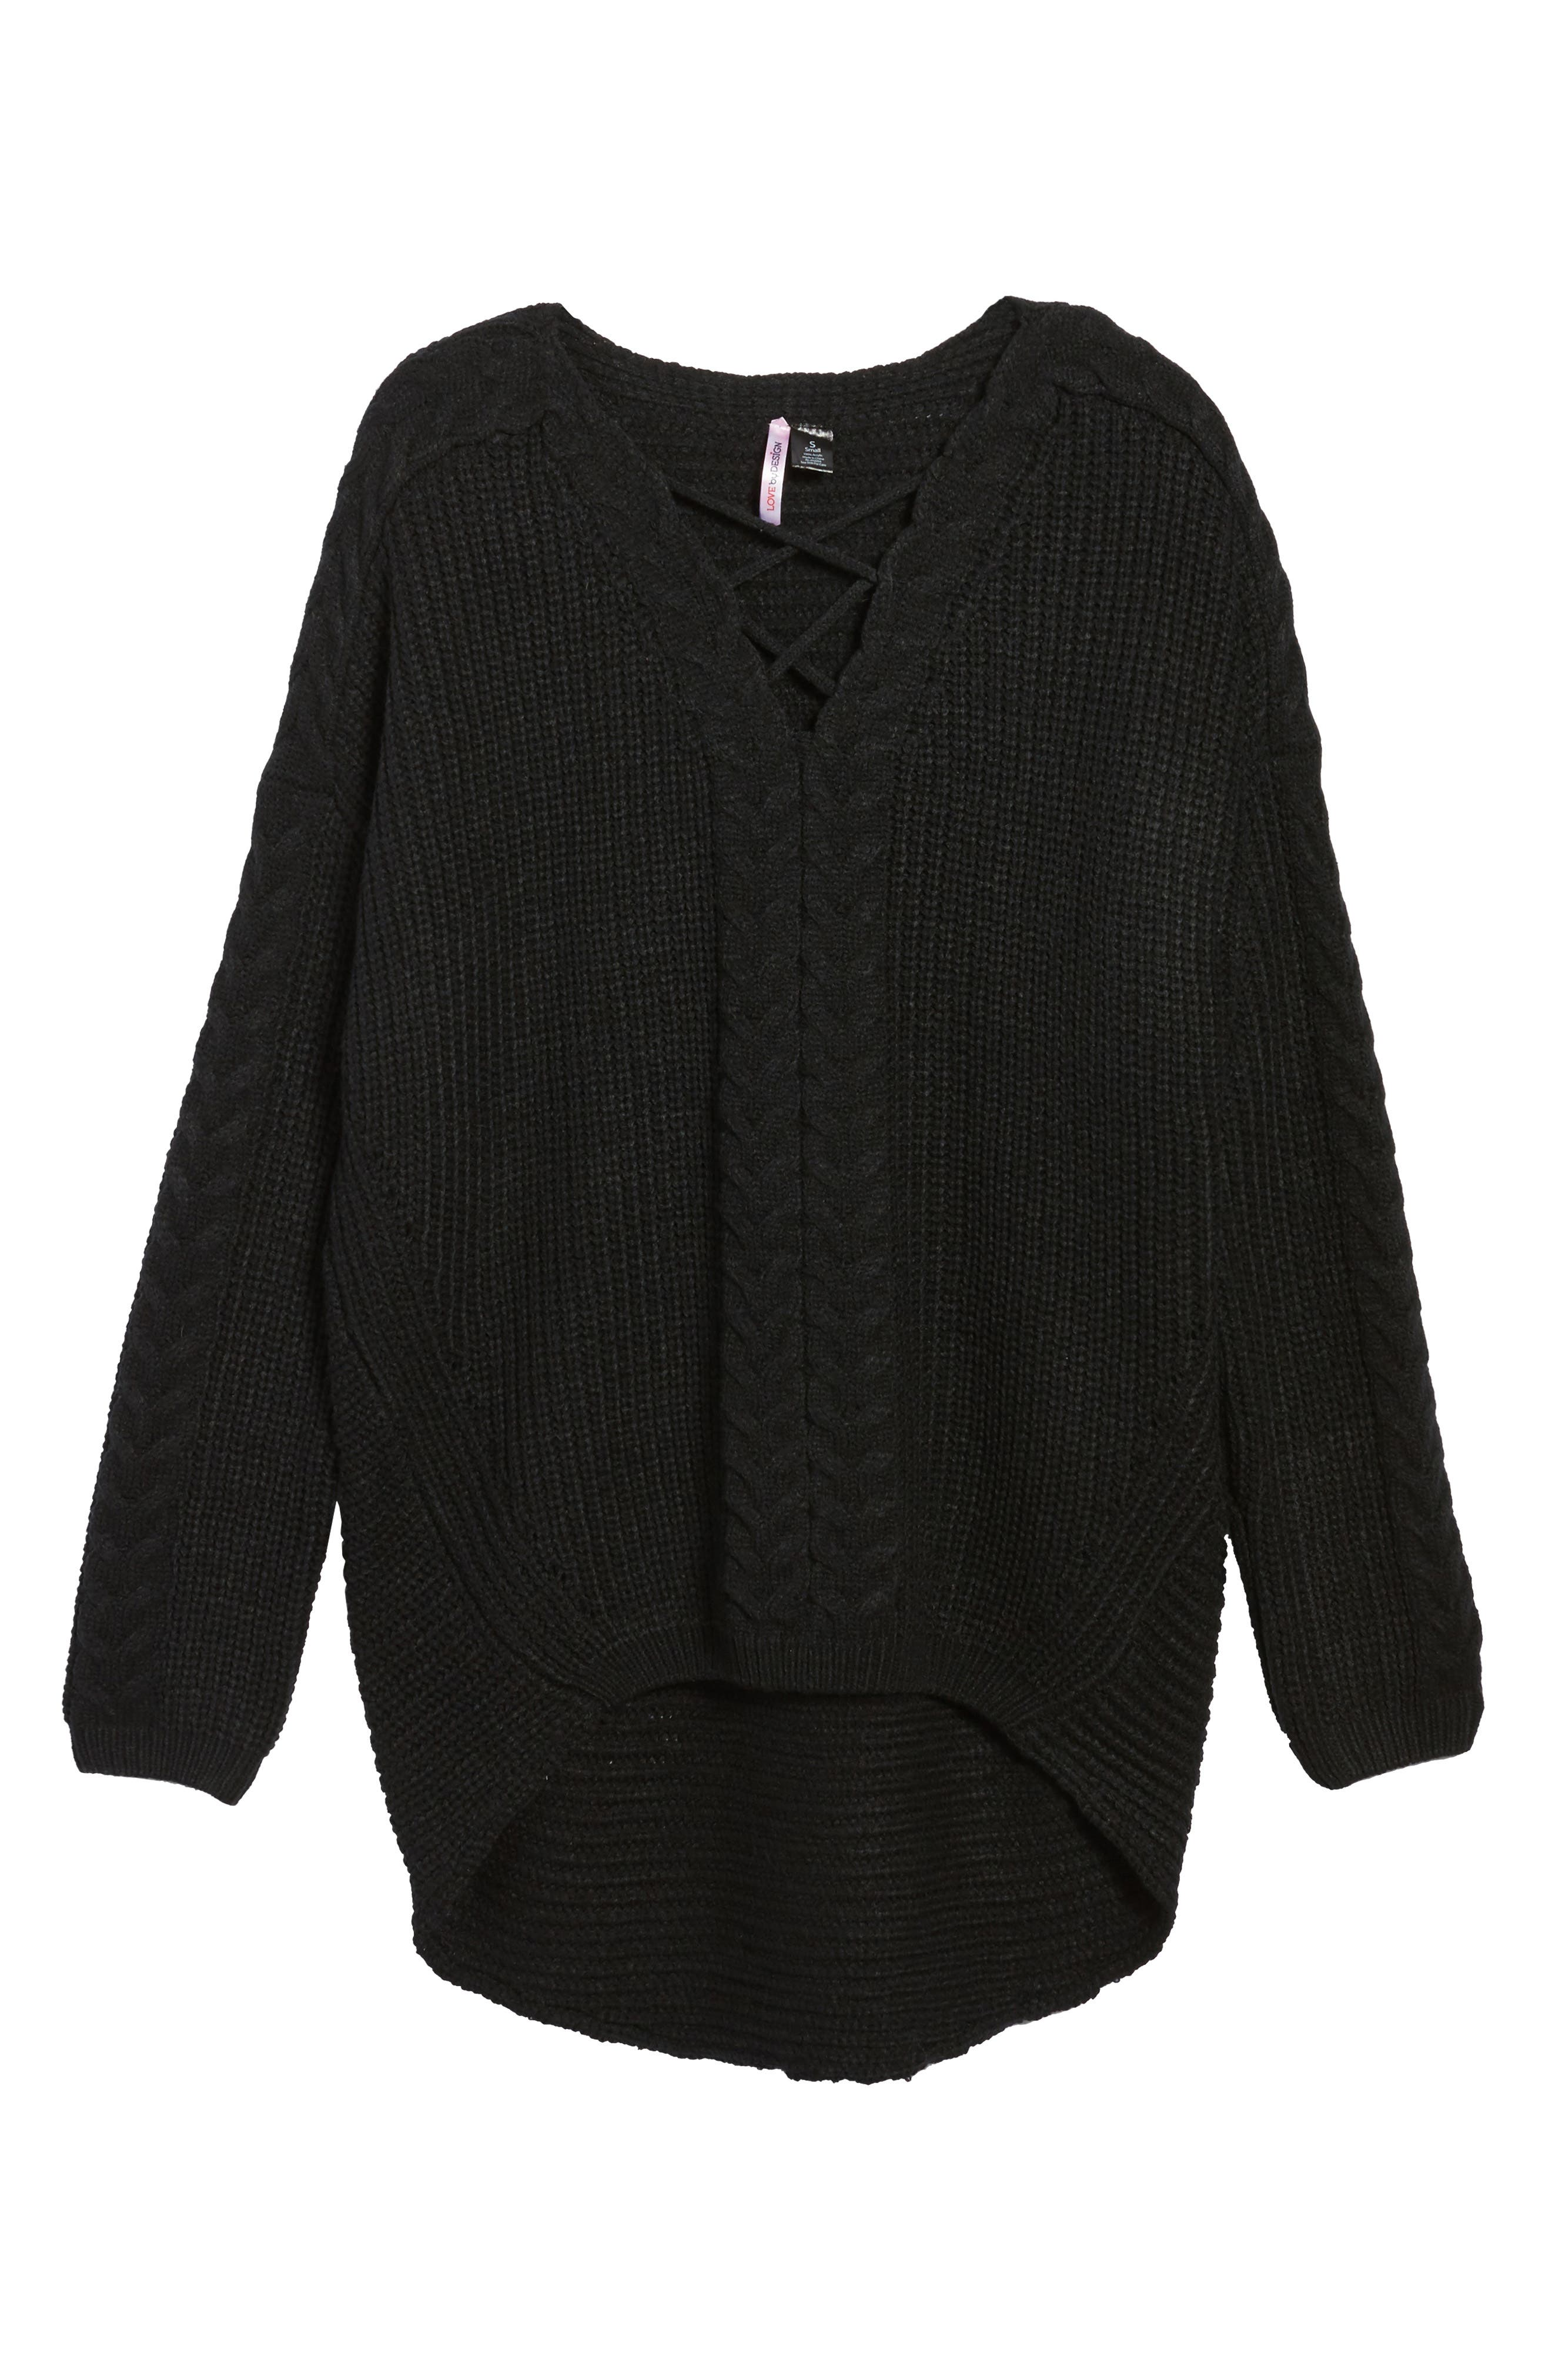 Cross Front Braided Sweater,                             Alternate thumbnail 6, color,                             001